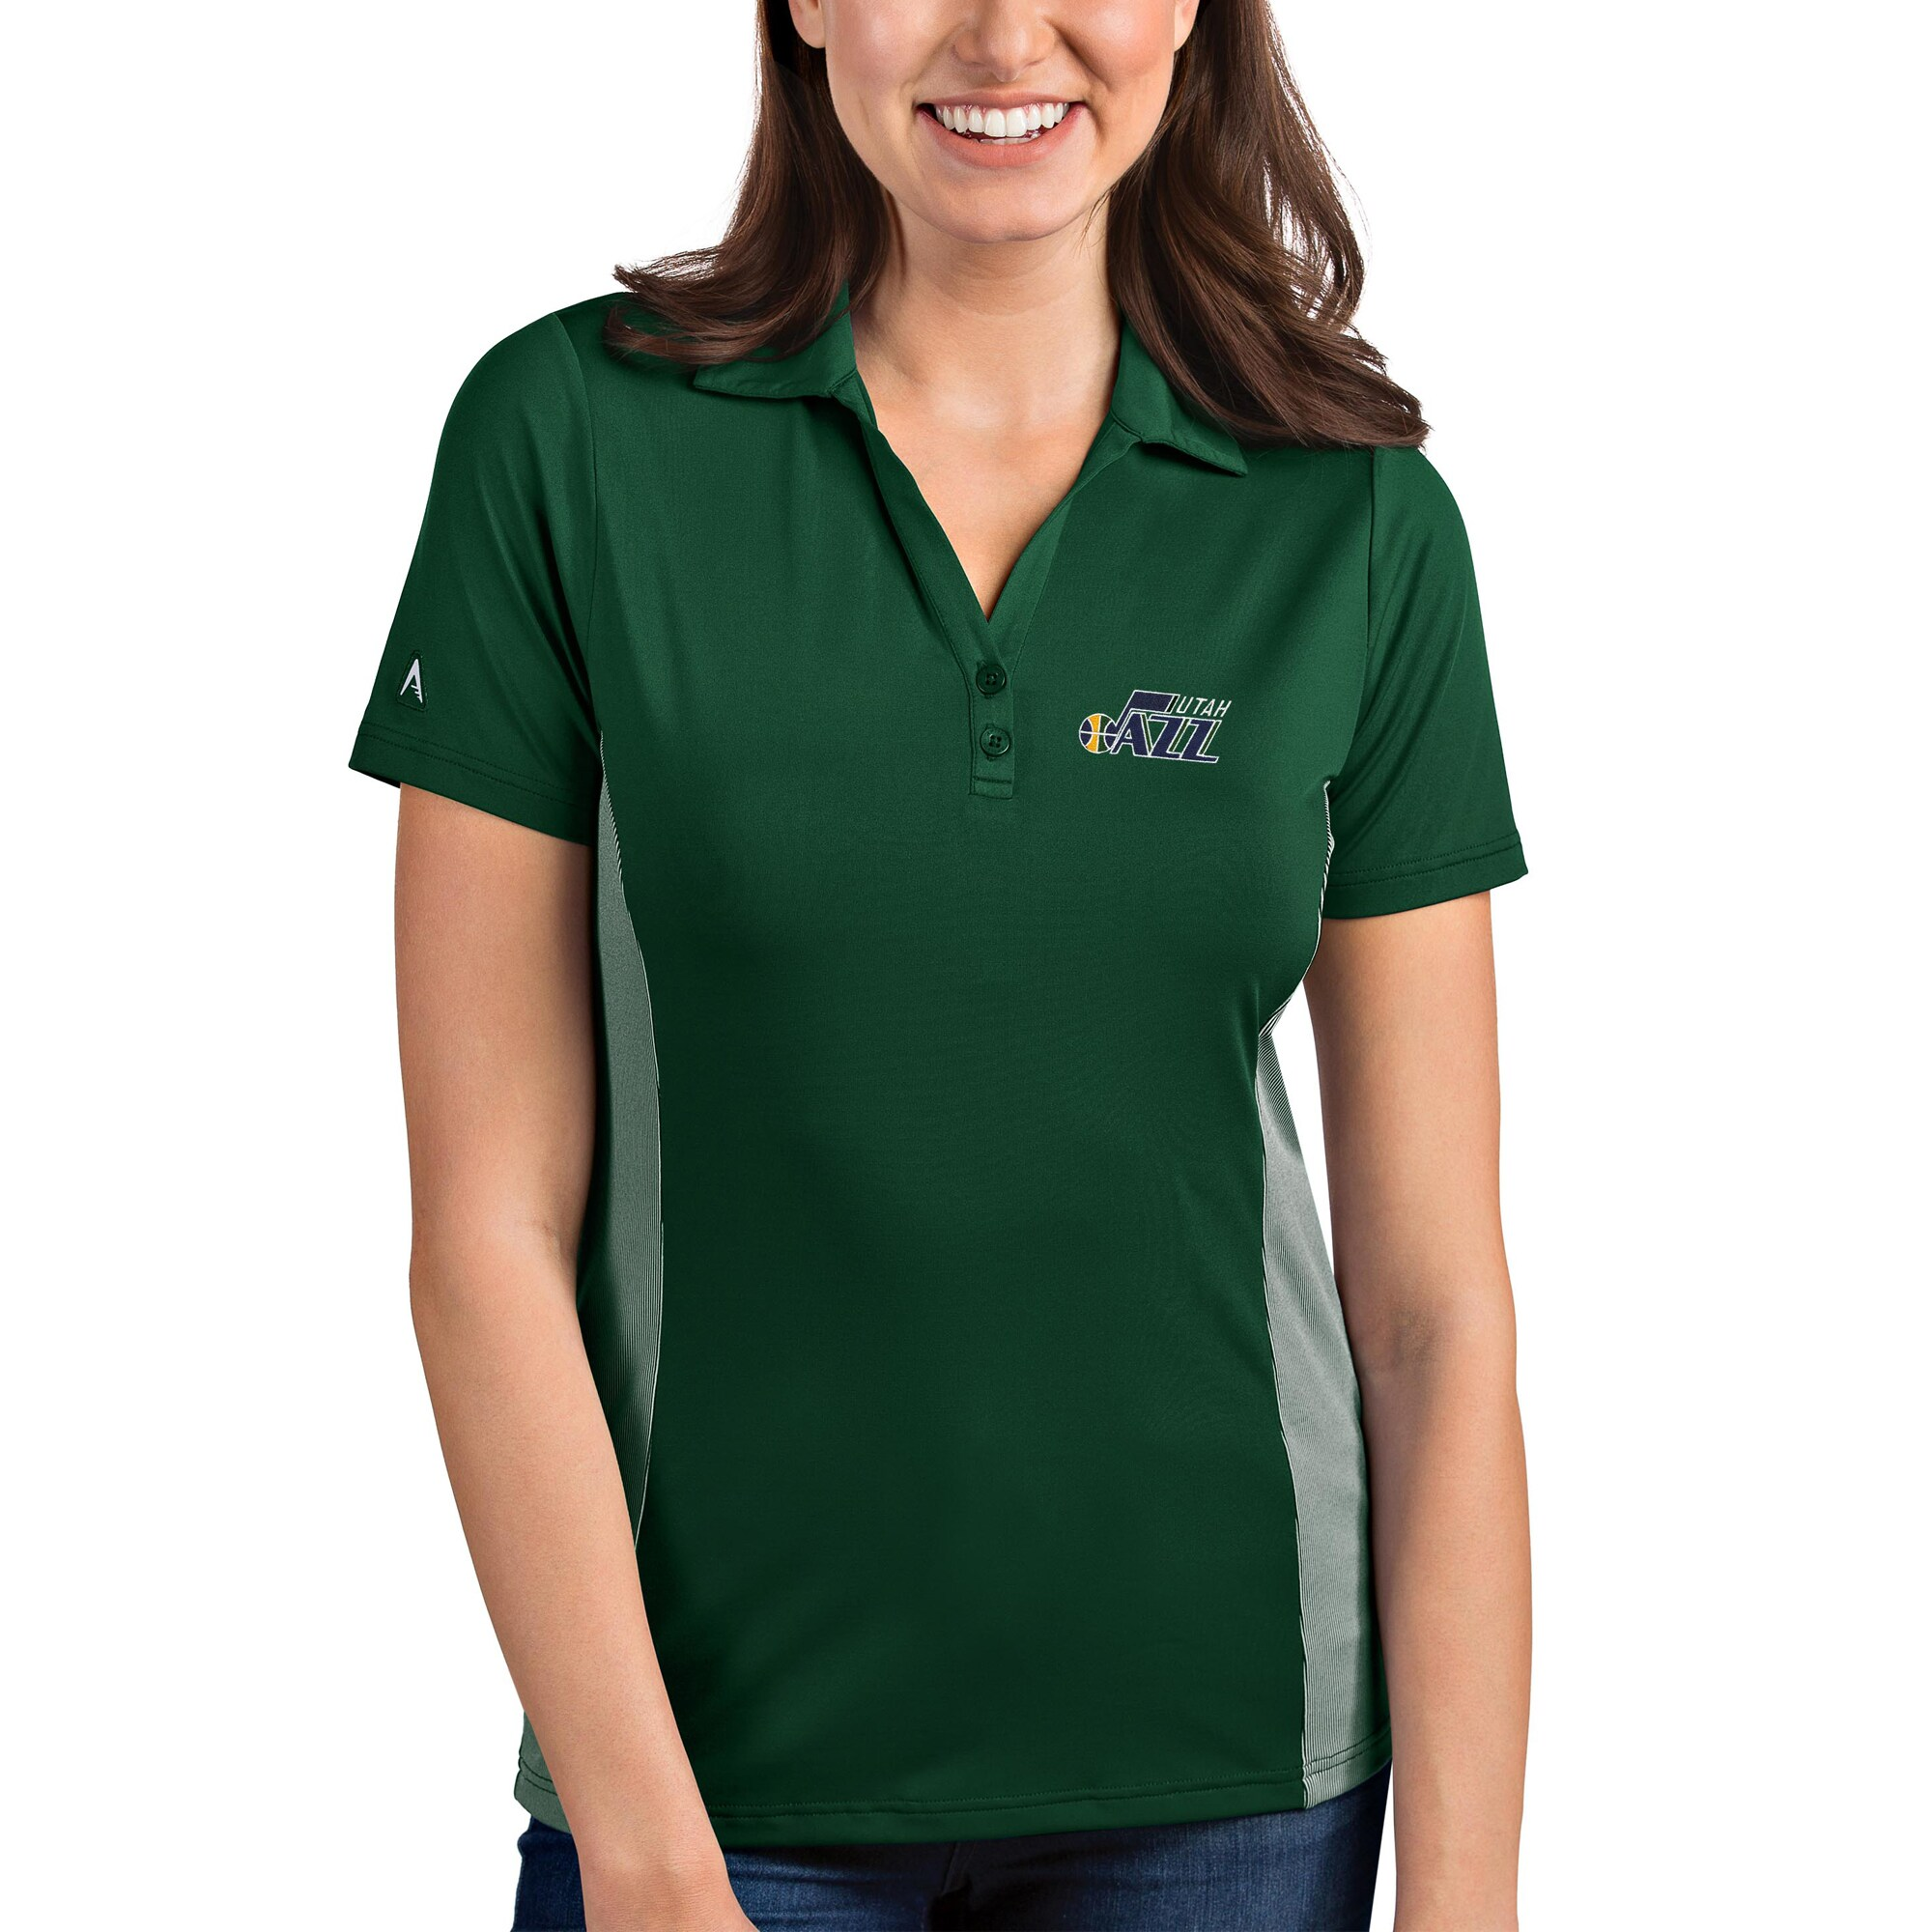 Utah Jazz Antigua Women's Venture Polo - Green/White